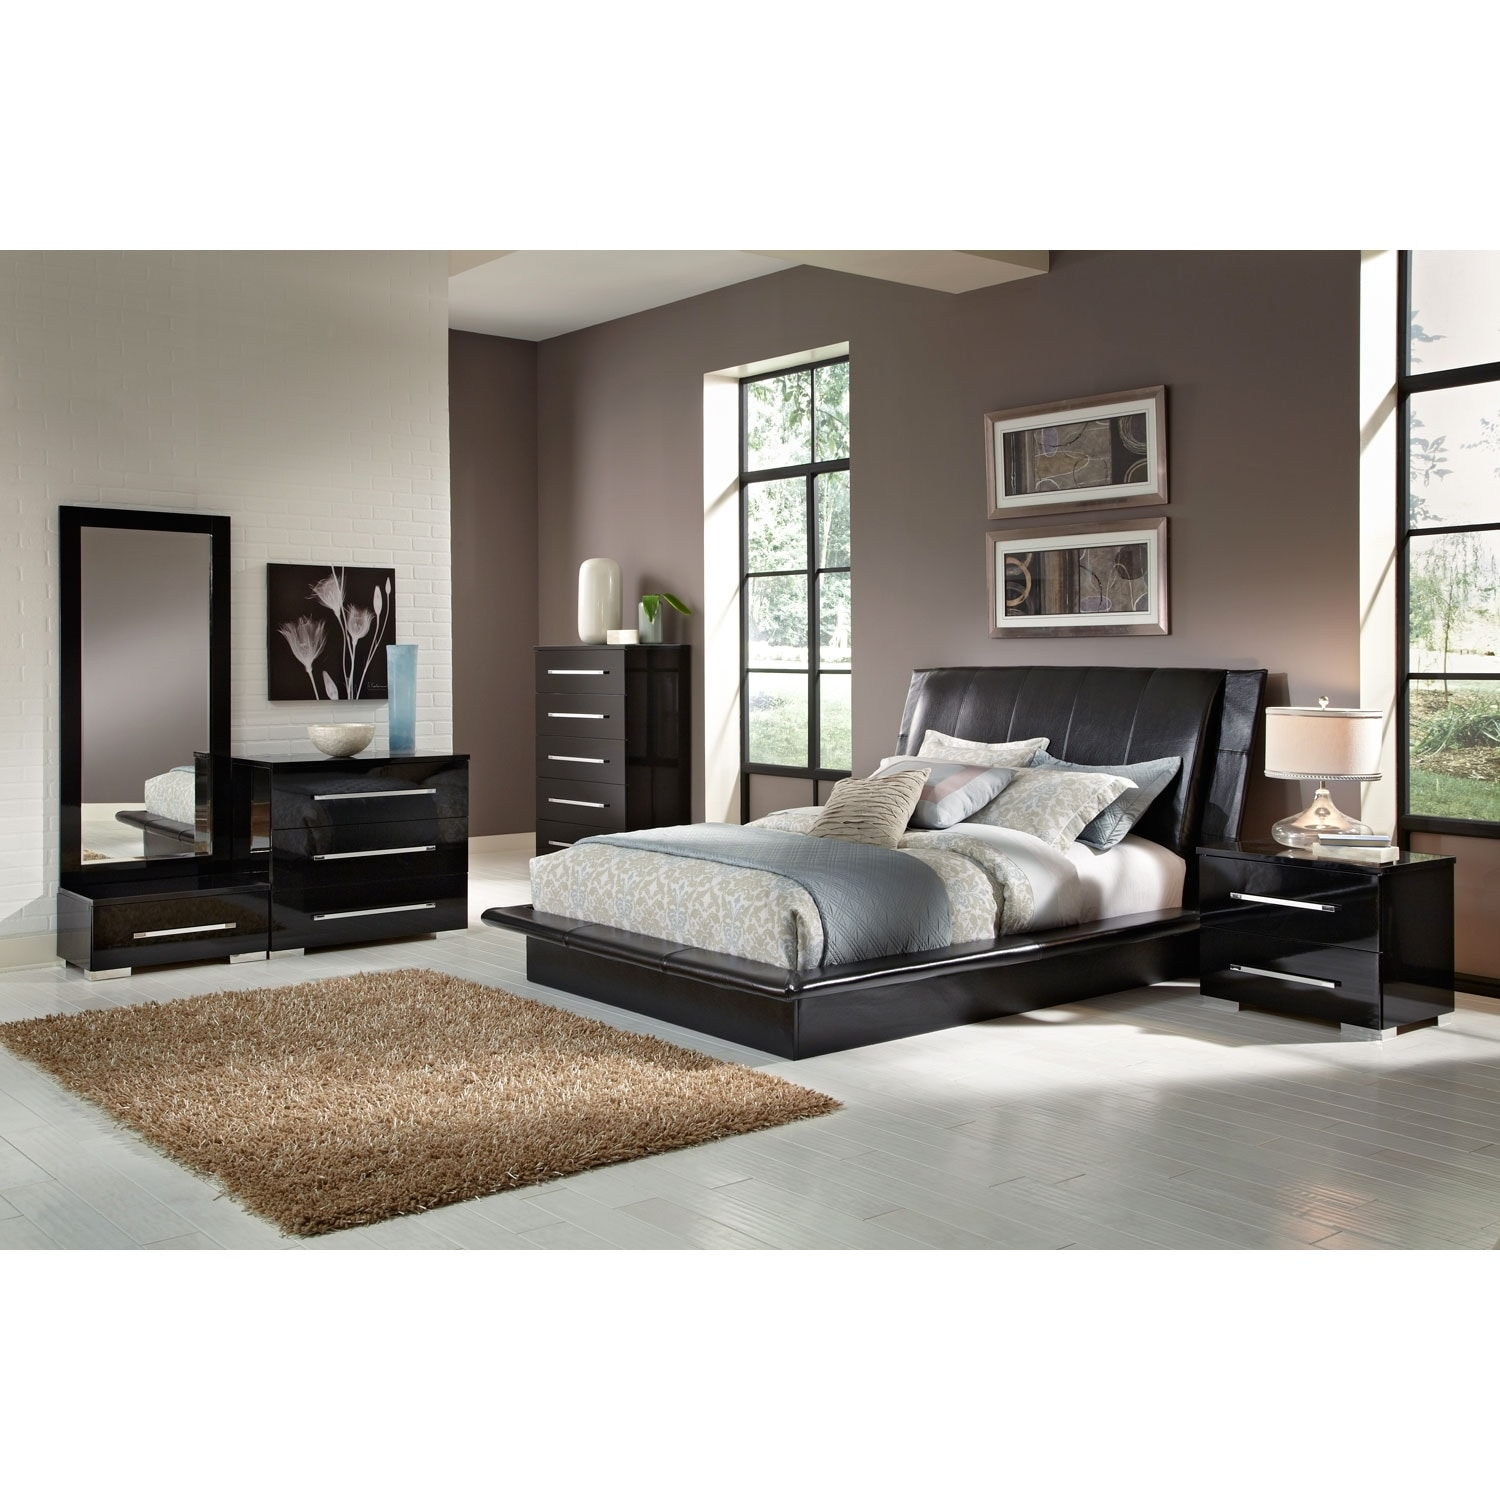 Bedroom Furniture - Dimora 7-Piece Queen Upholstered Bedroom Set ...